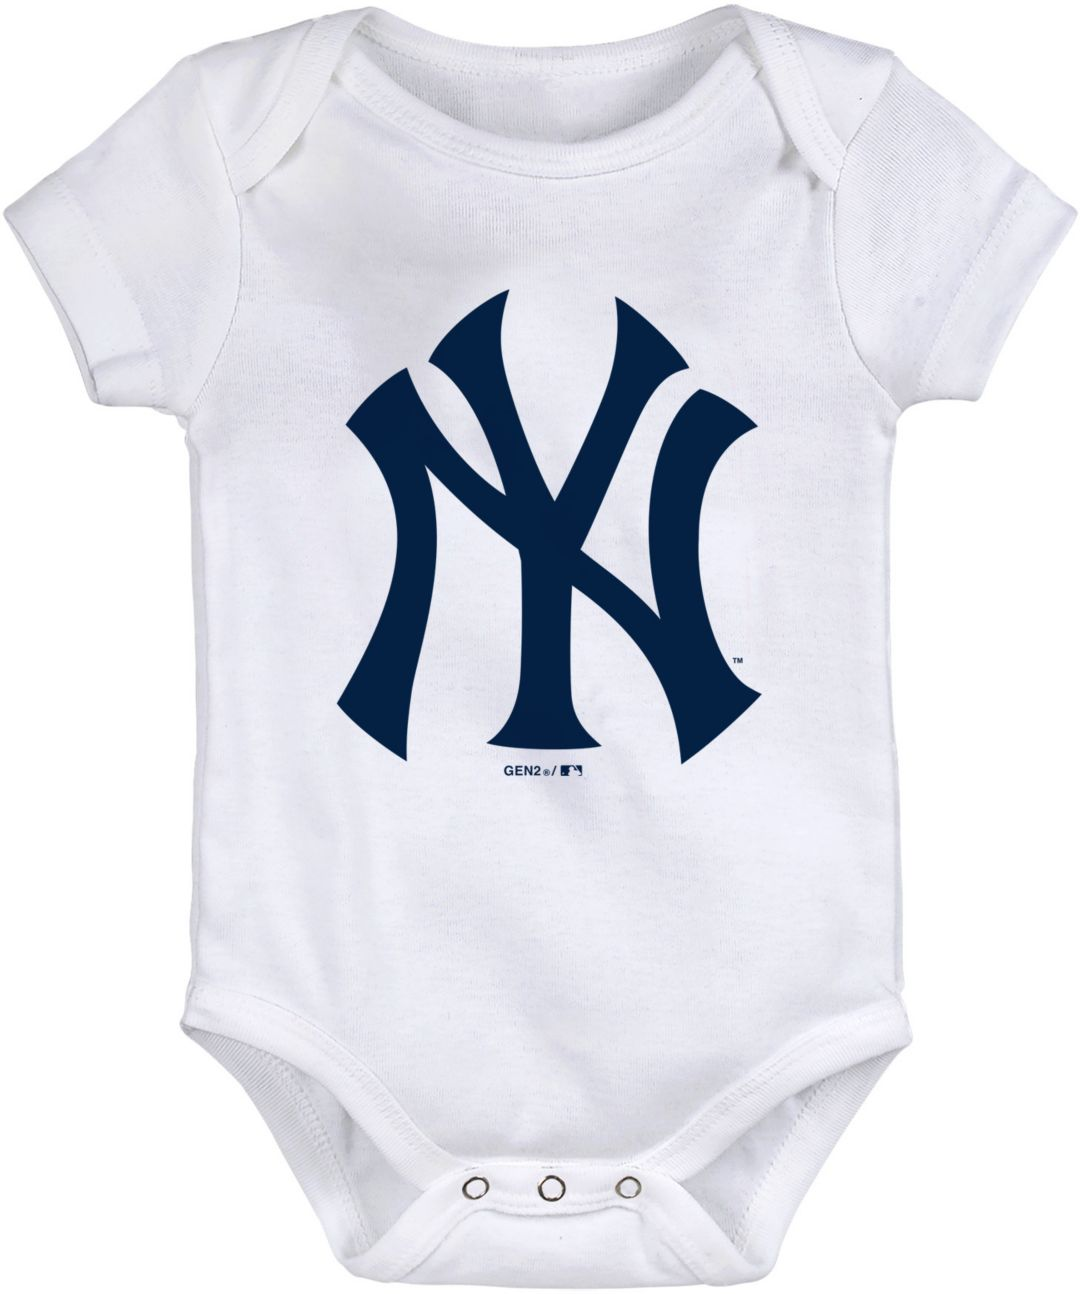 on sale 6f84a e0bae Gen2 Infant New York Yankees 3-Piece Onesie Set